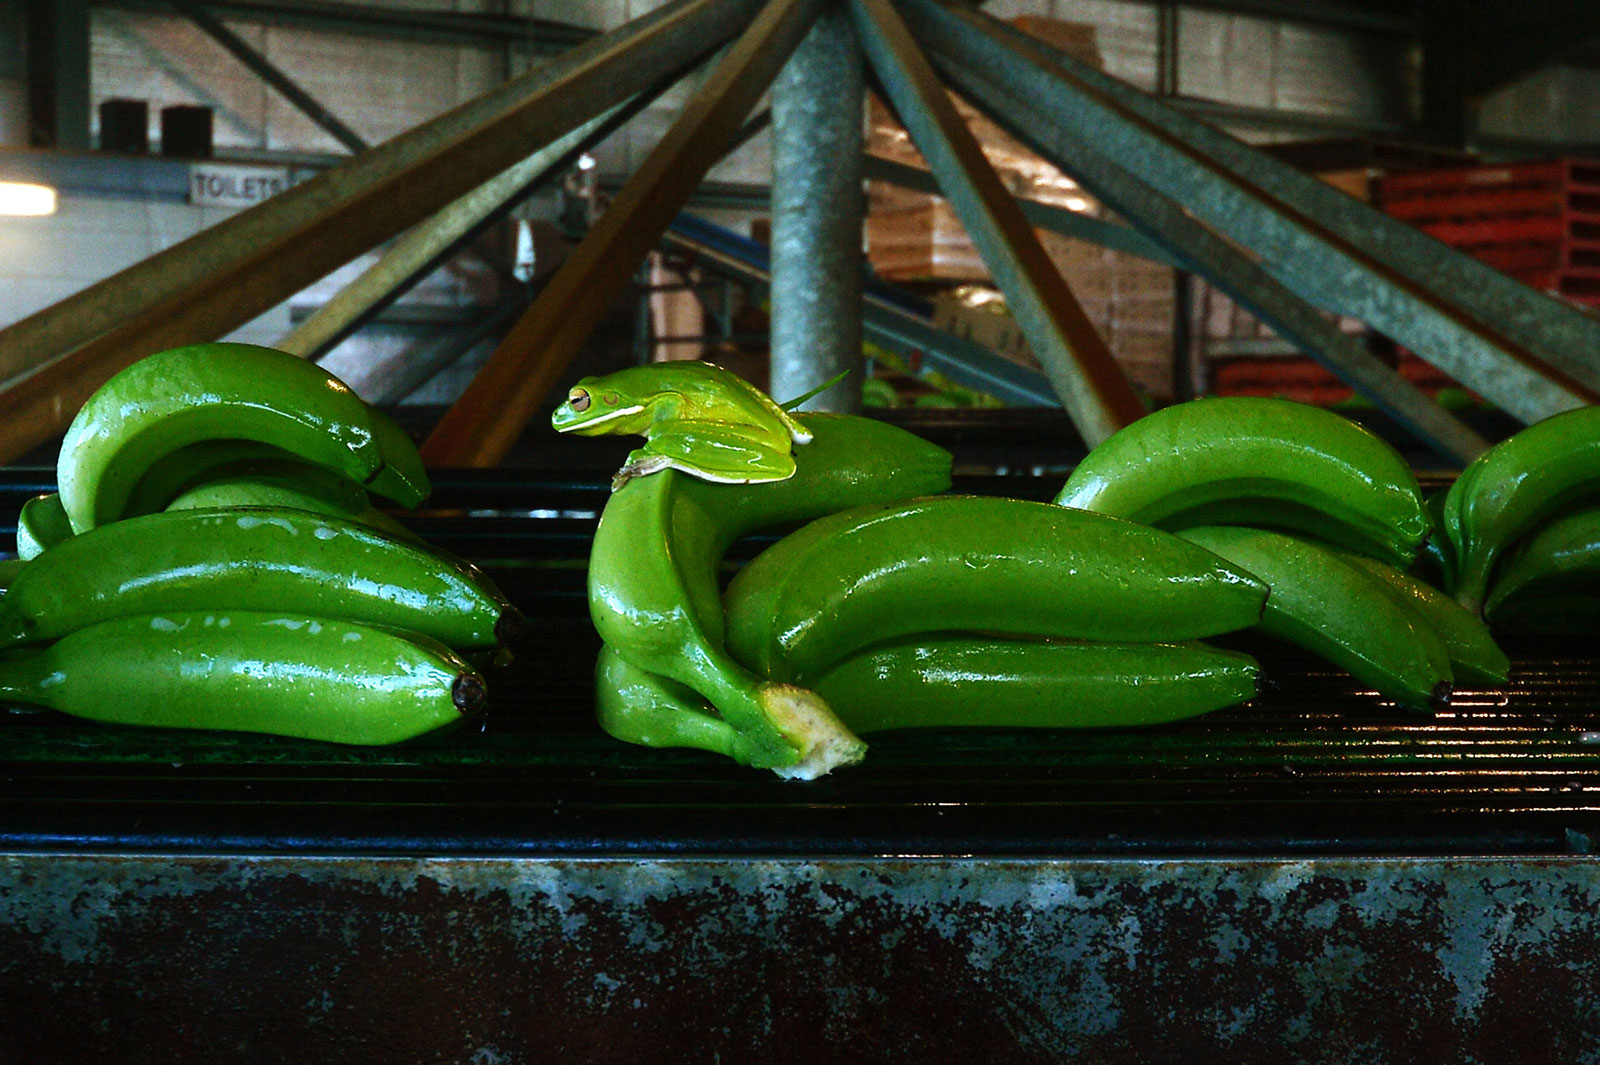 A green frog sits on freshly harvested bananas moving along a conveyor at the Liverpool River Bananas farm near Tully, Queensland, Australia